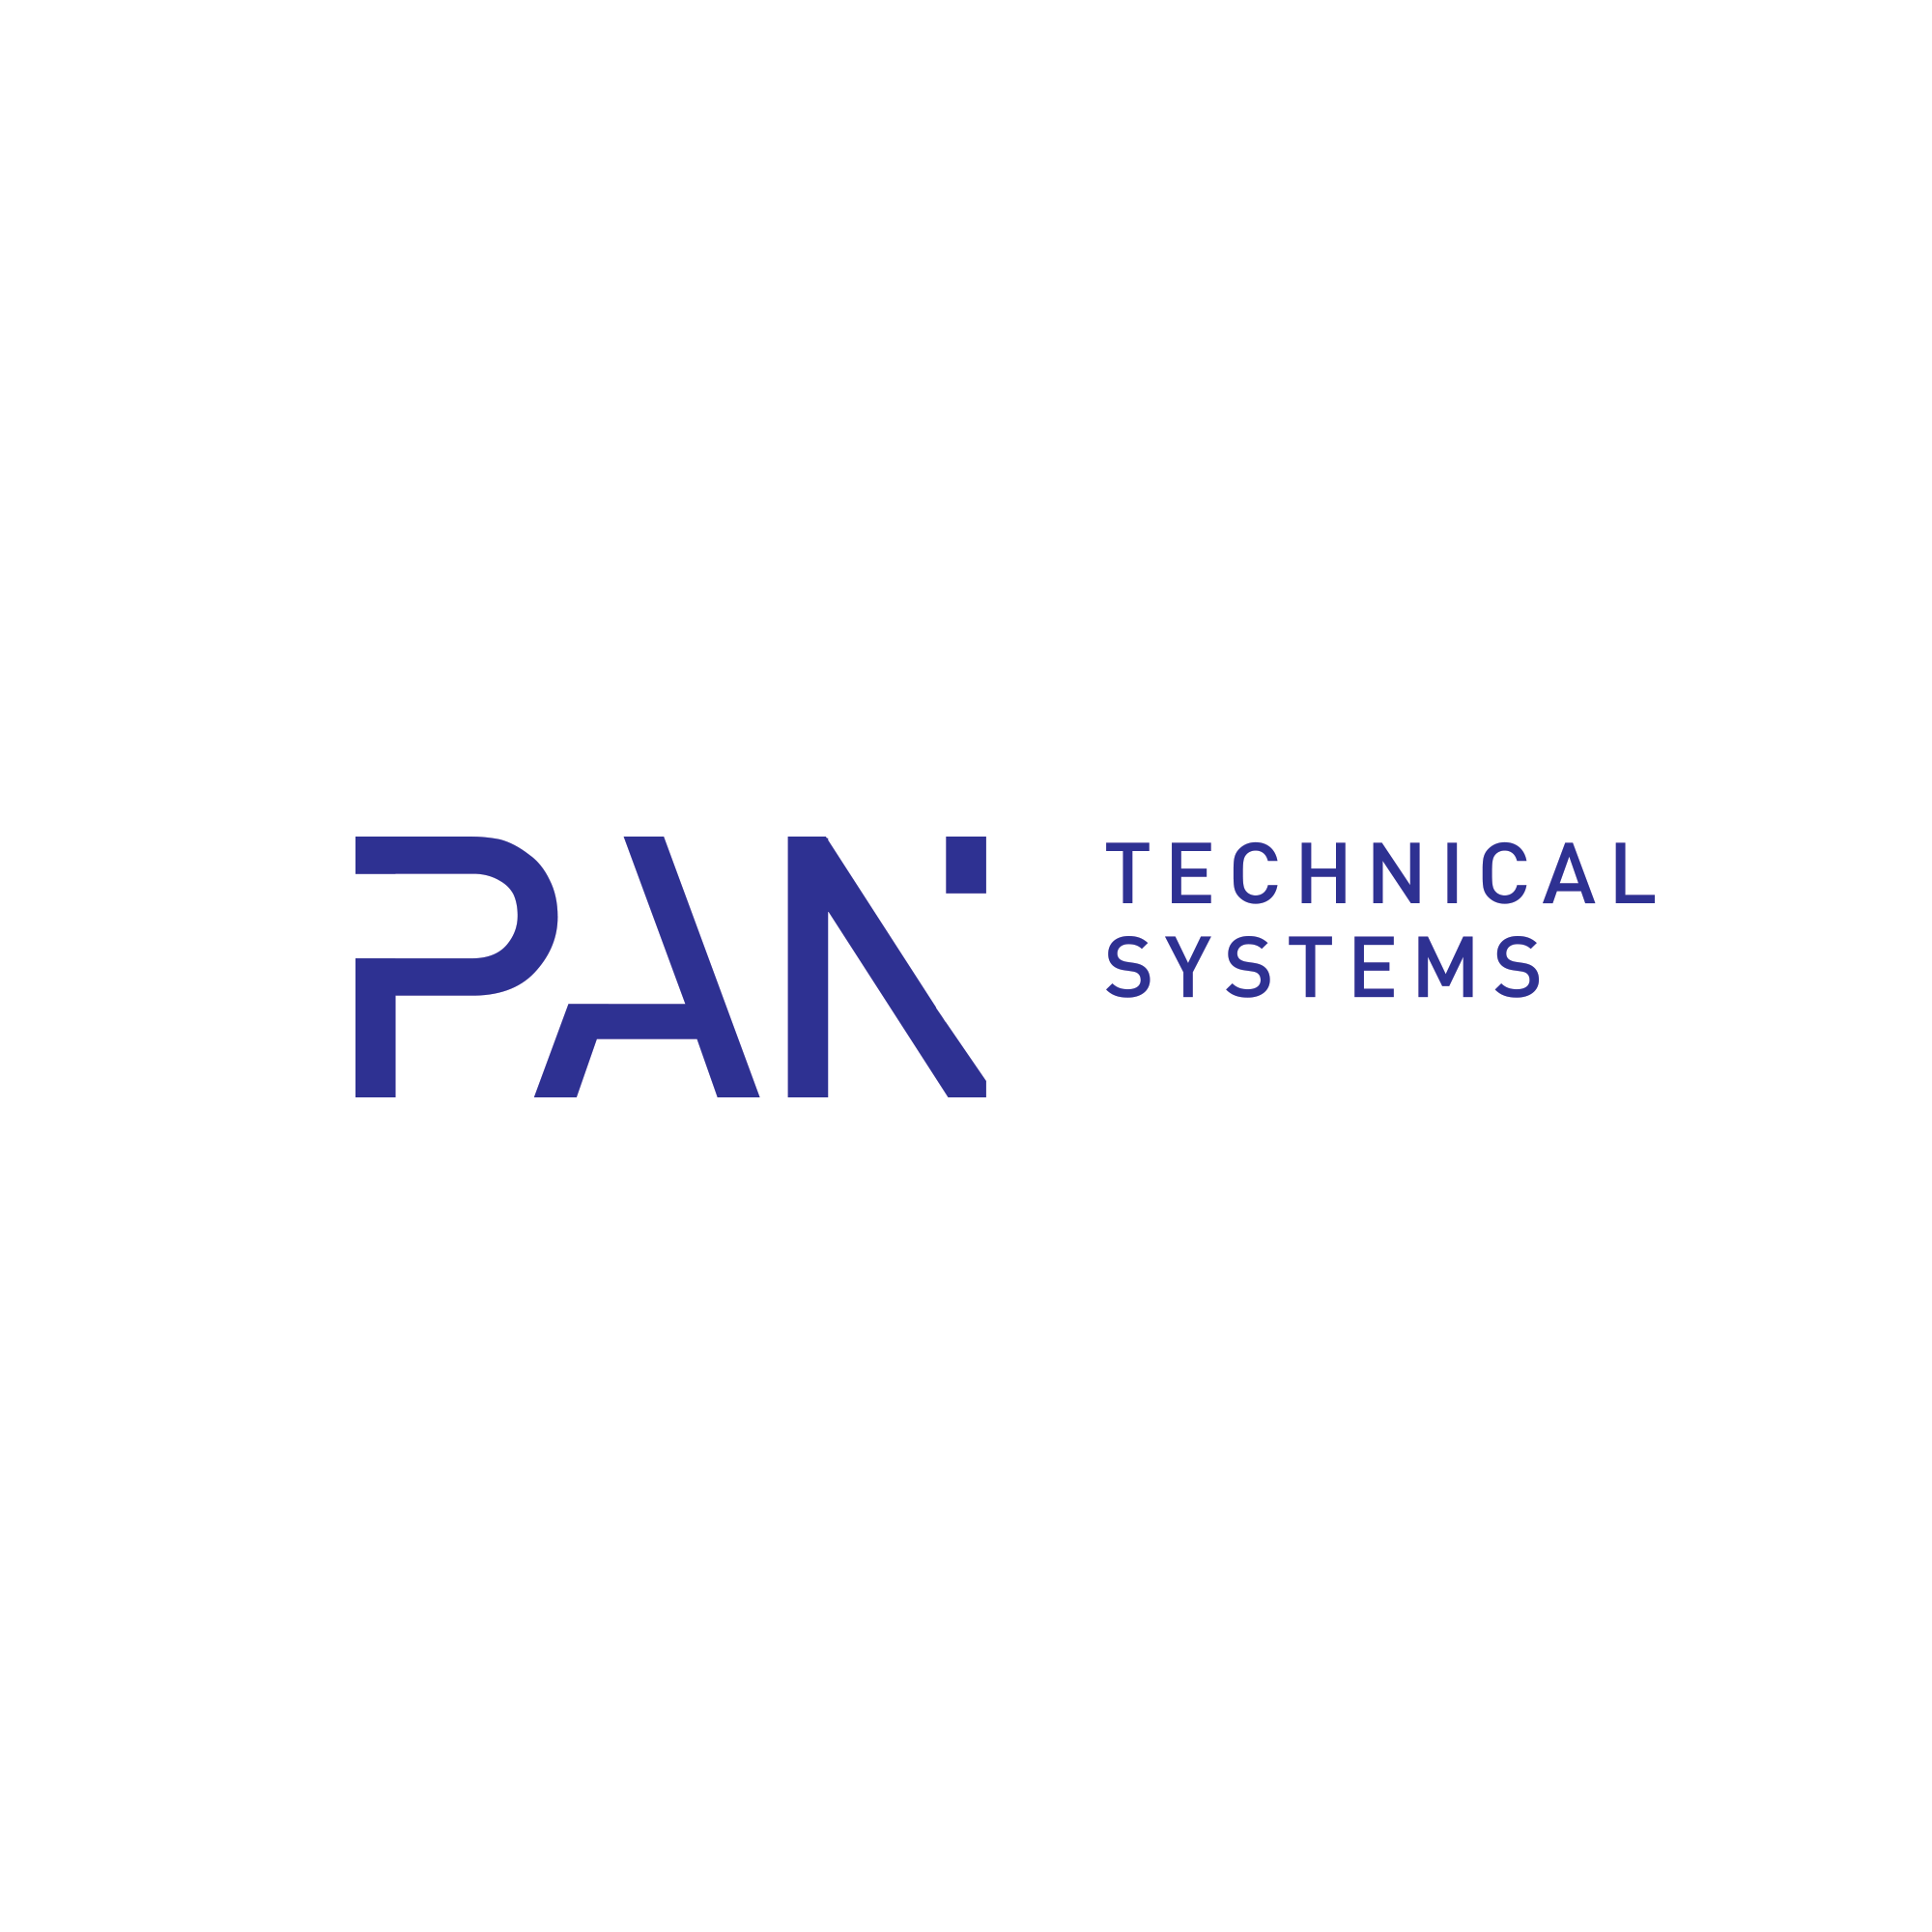 PAN TECHNCAL SYSTEMS Logo